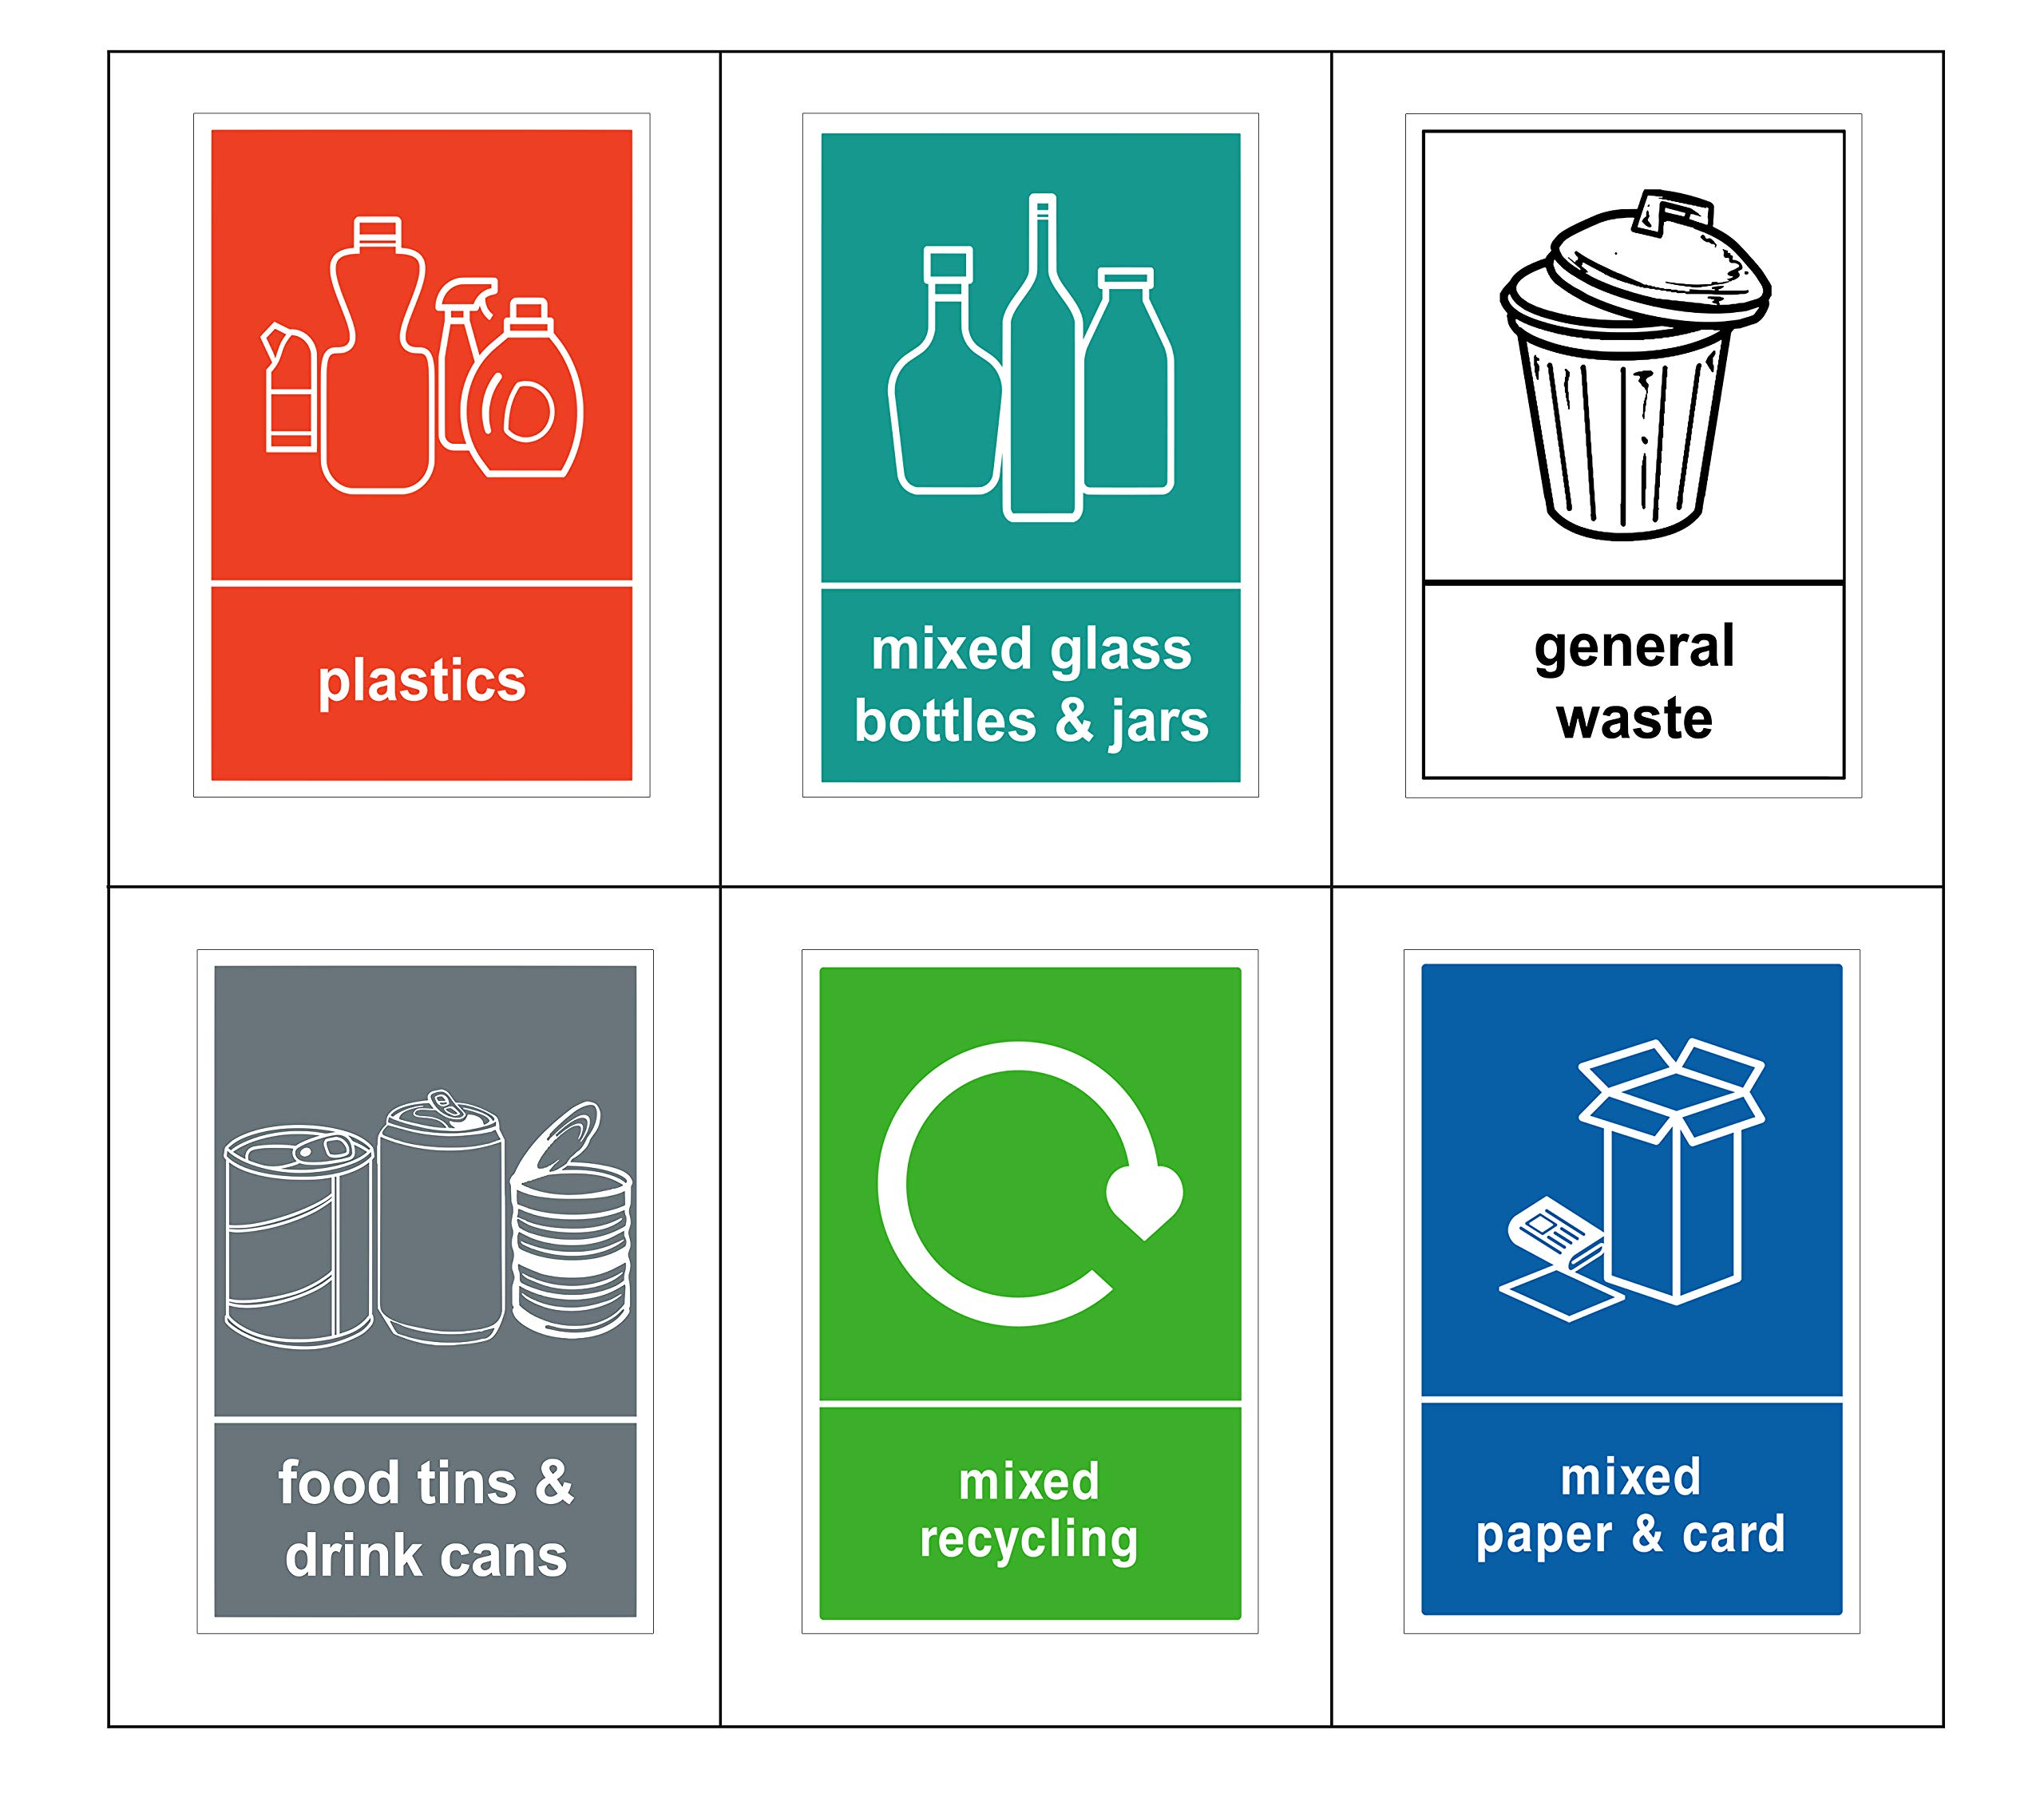 Mixed Pack of 6 Multi Recycling Bin Sticker-Self Adhesive with Waterproof Bin Labels/Food/Plastics/Mixed Paper & Card/Mixed Glass/General Waste 6 decals (A6-100 x 150 mm) V1082 Sara Prints